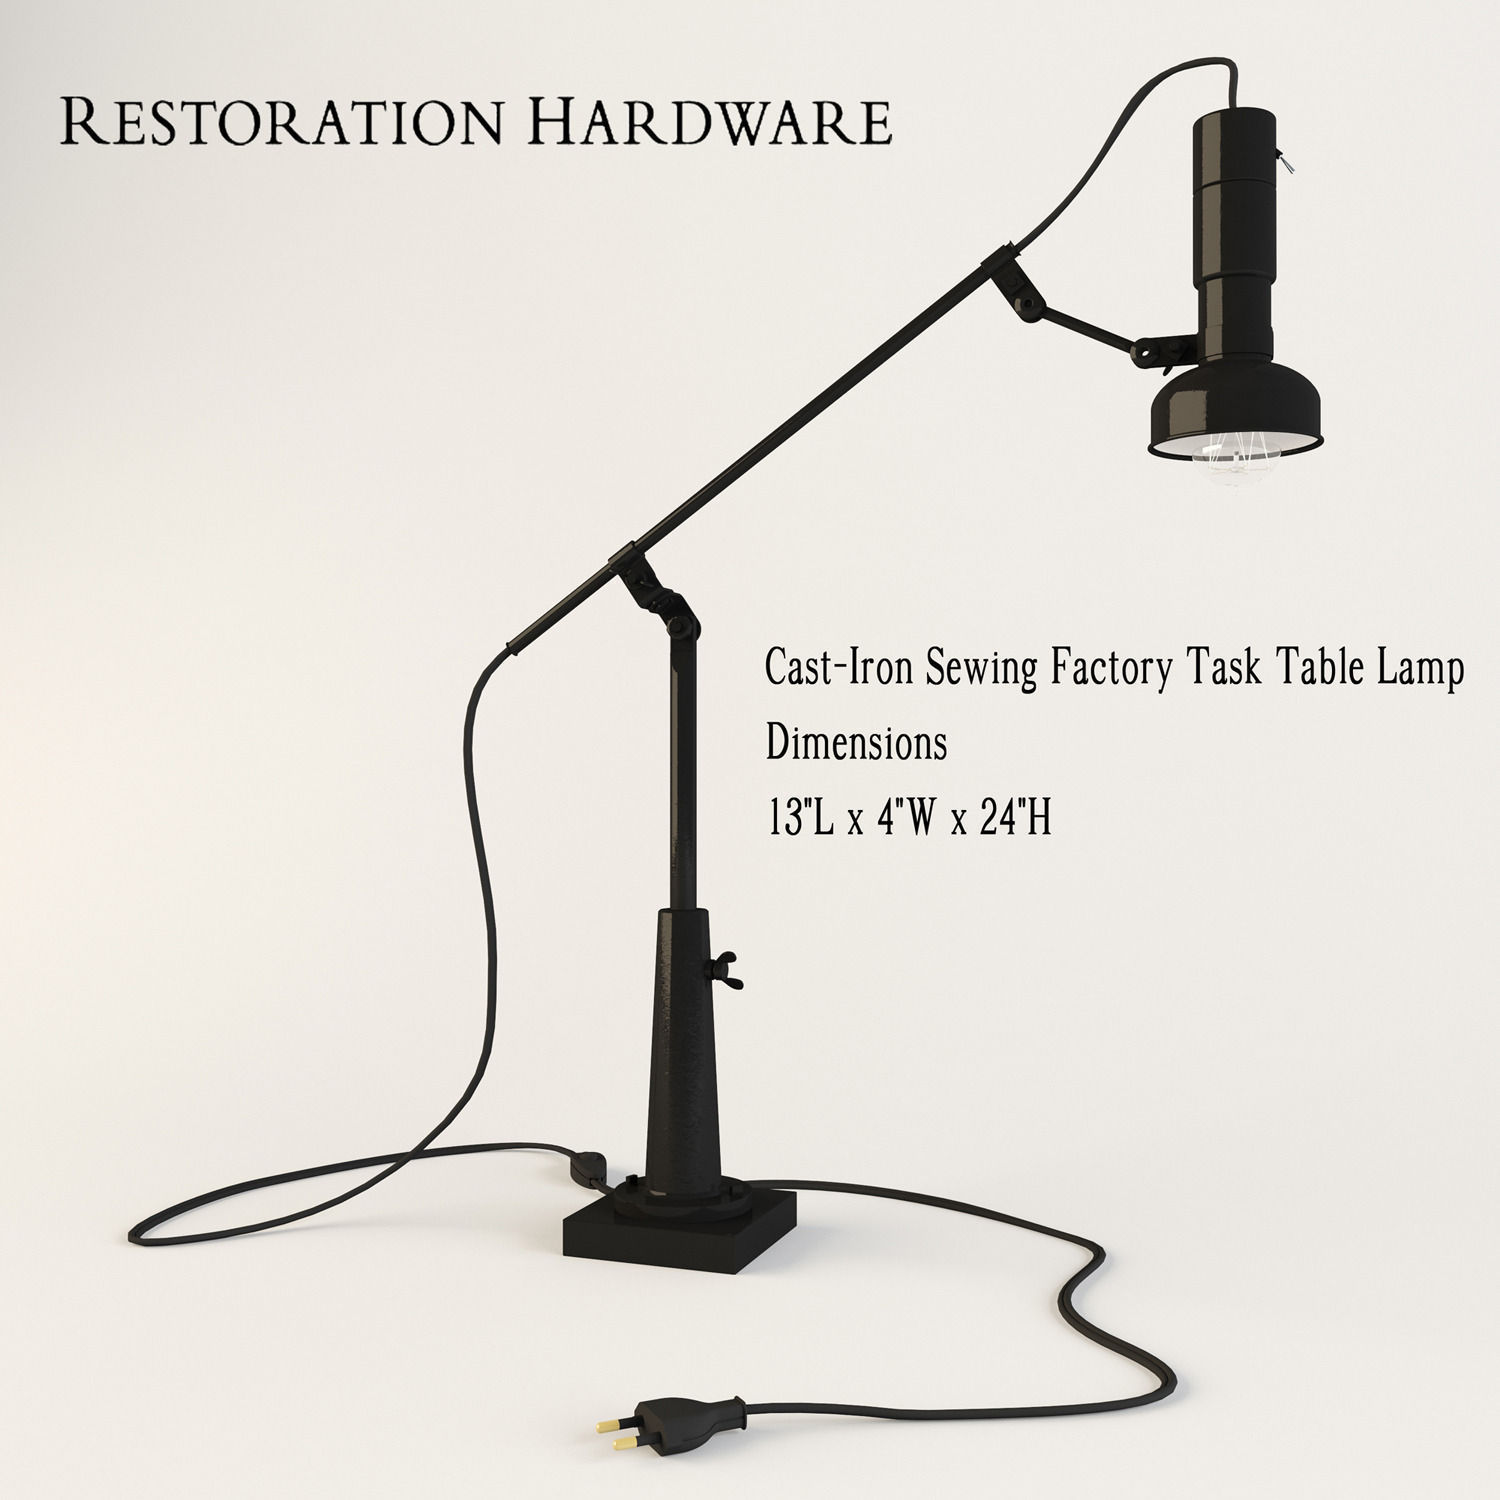 Restoration hardware cast iron sewing factory task table lamp 3d restoration hardware cast iron sewing factory task table lamp 3d model max obj 3ds mtl 1 geotapseo Images